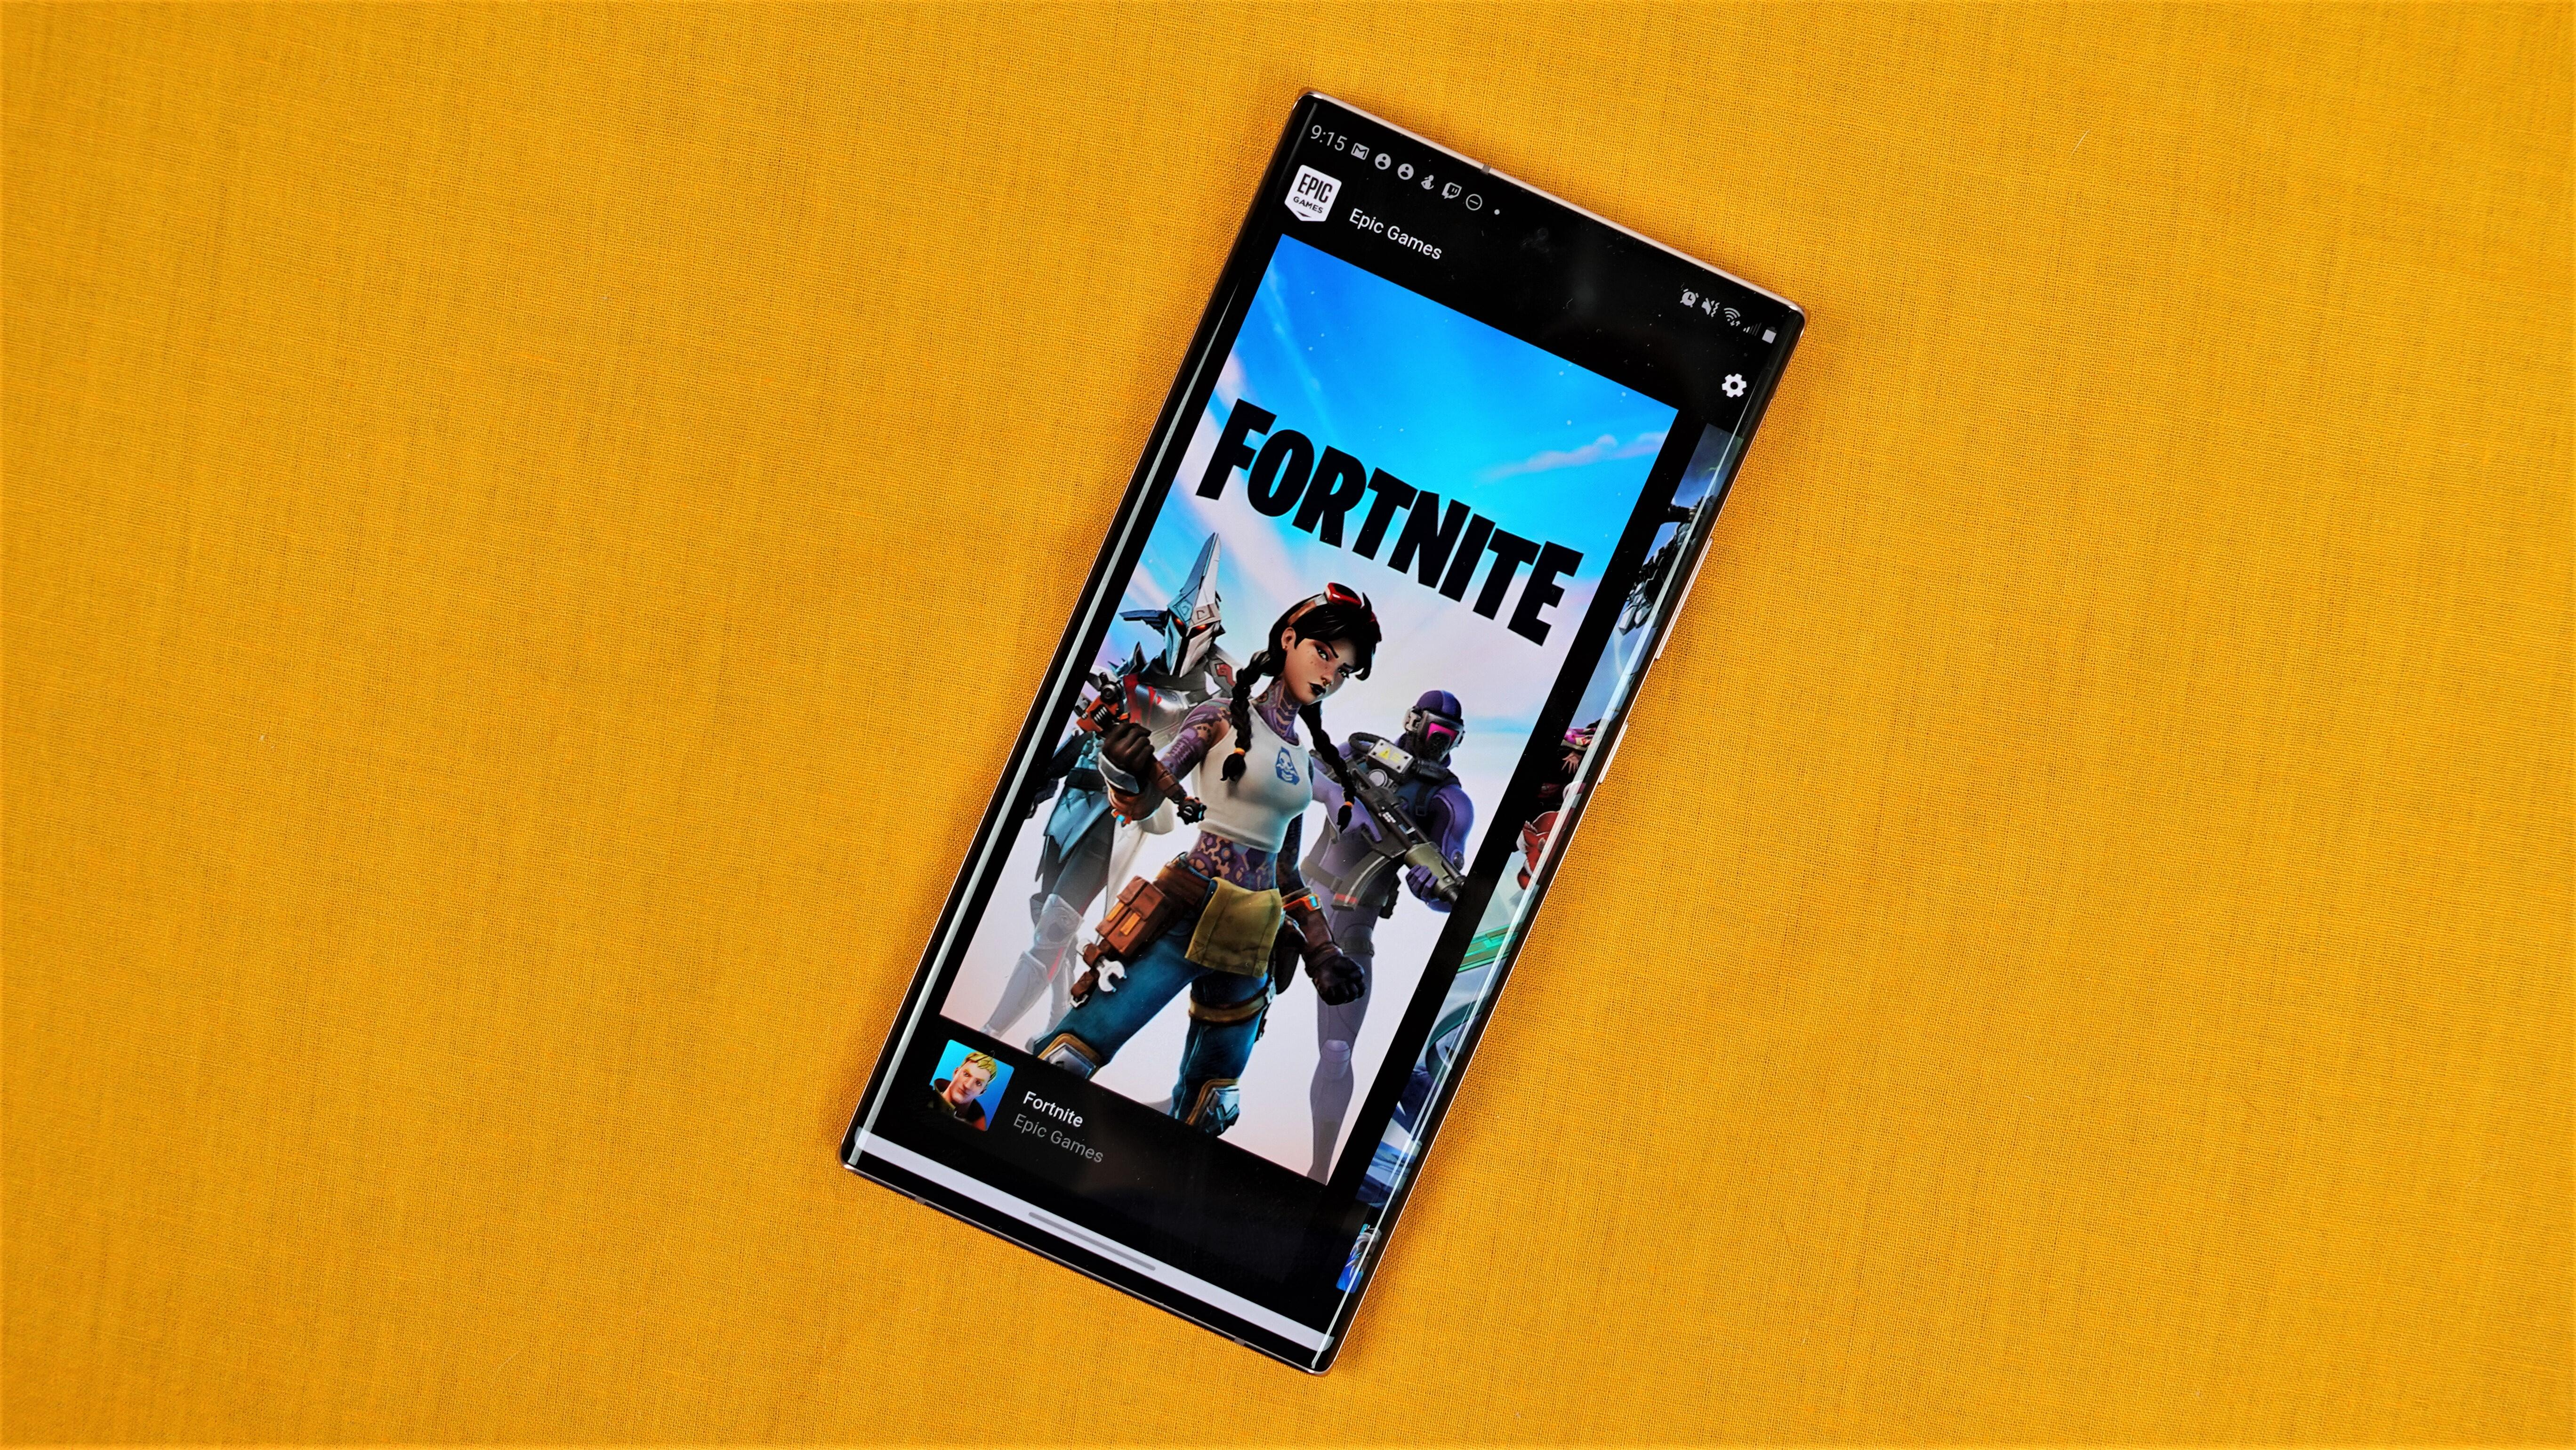 Why Cant I Install Fortnite On My Note 8 How To Install Fortnite On Your Android Phone Cnet